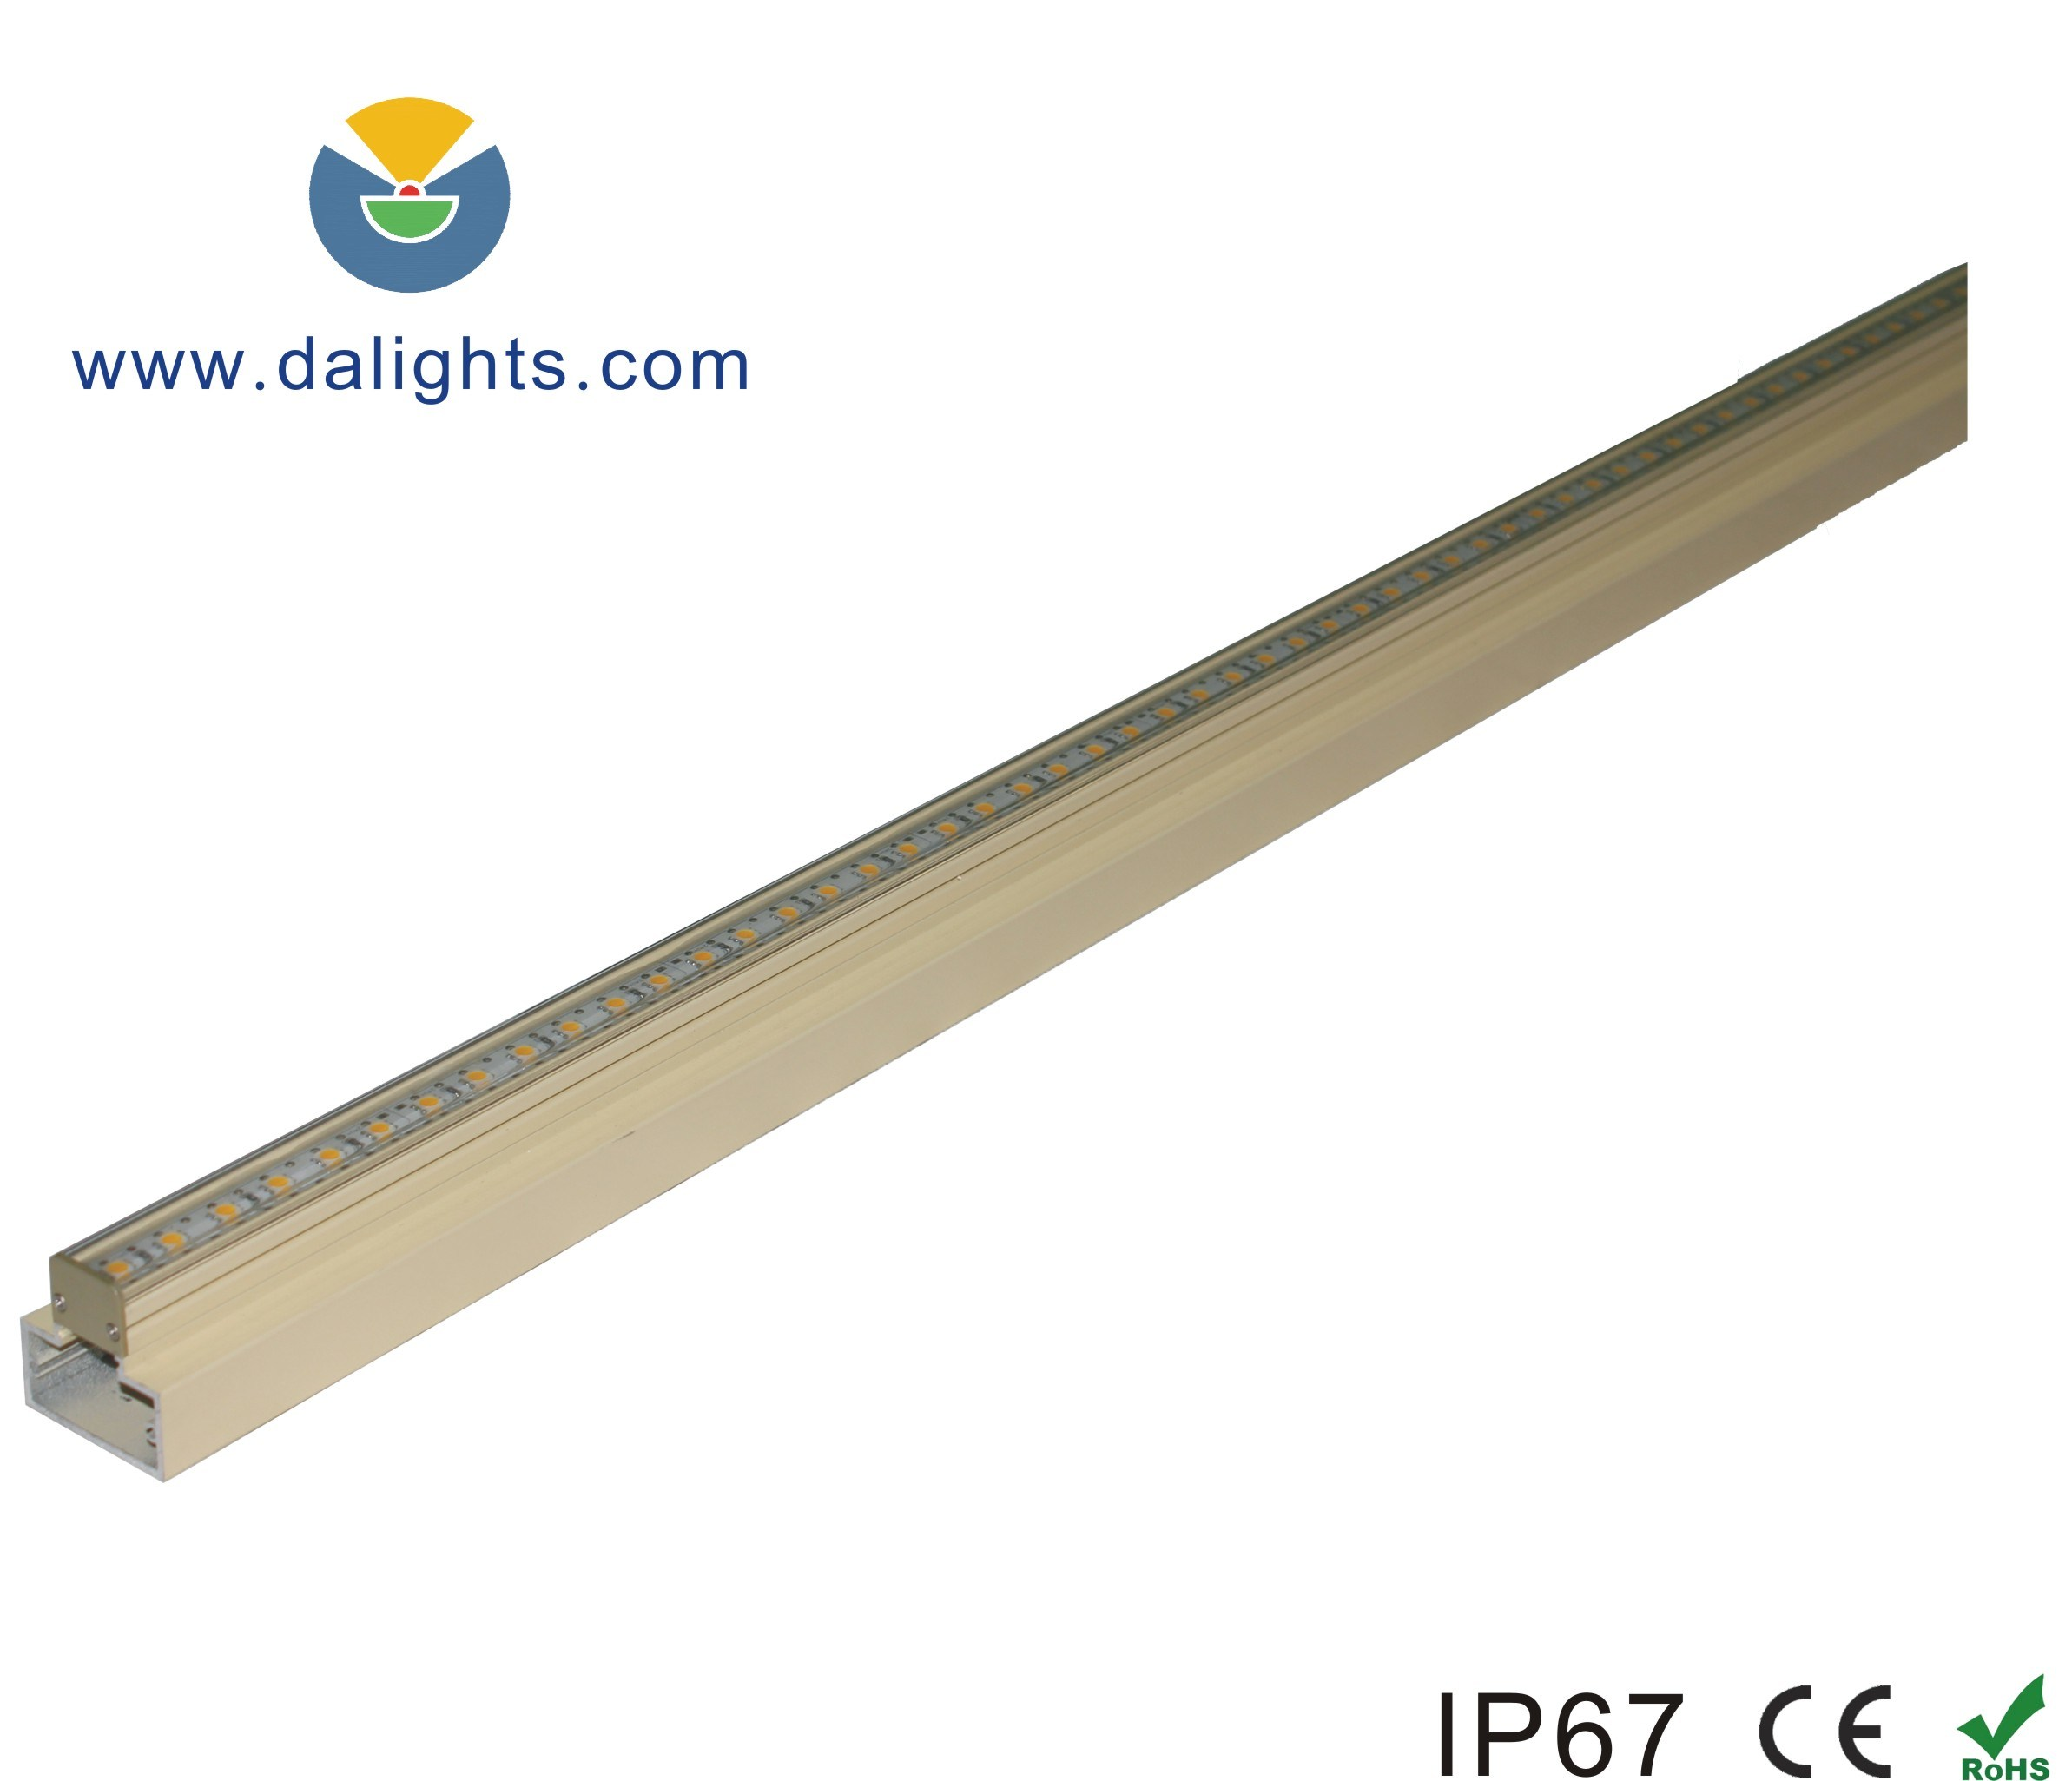 Waterproof Samung SMD2833 LED Rigid Bar